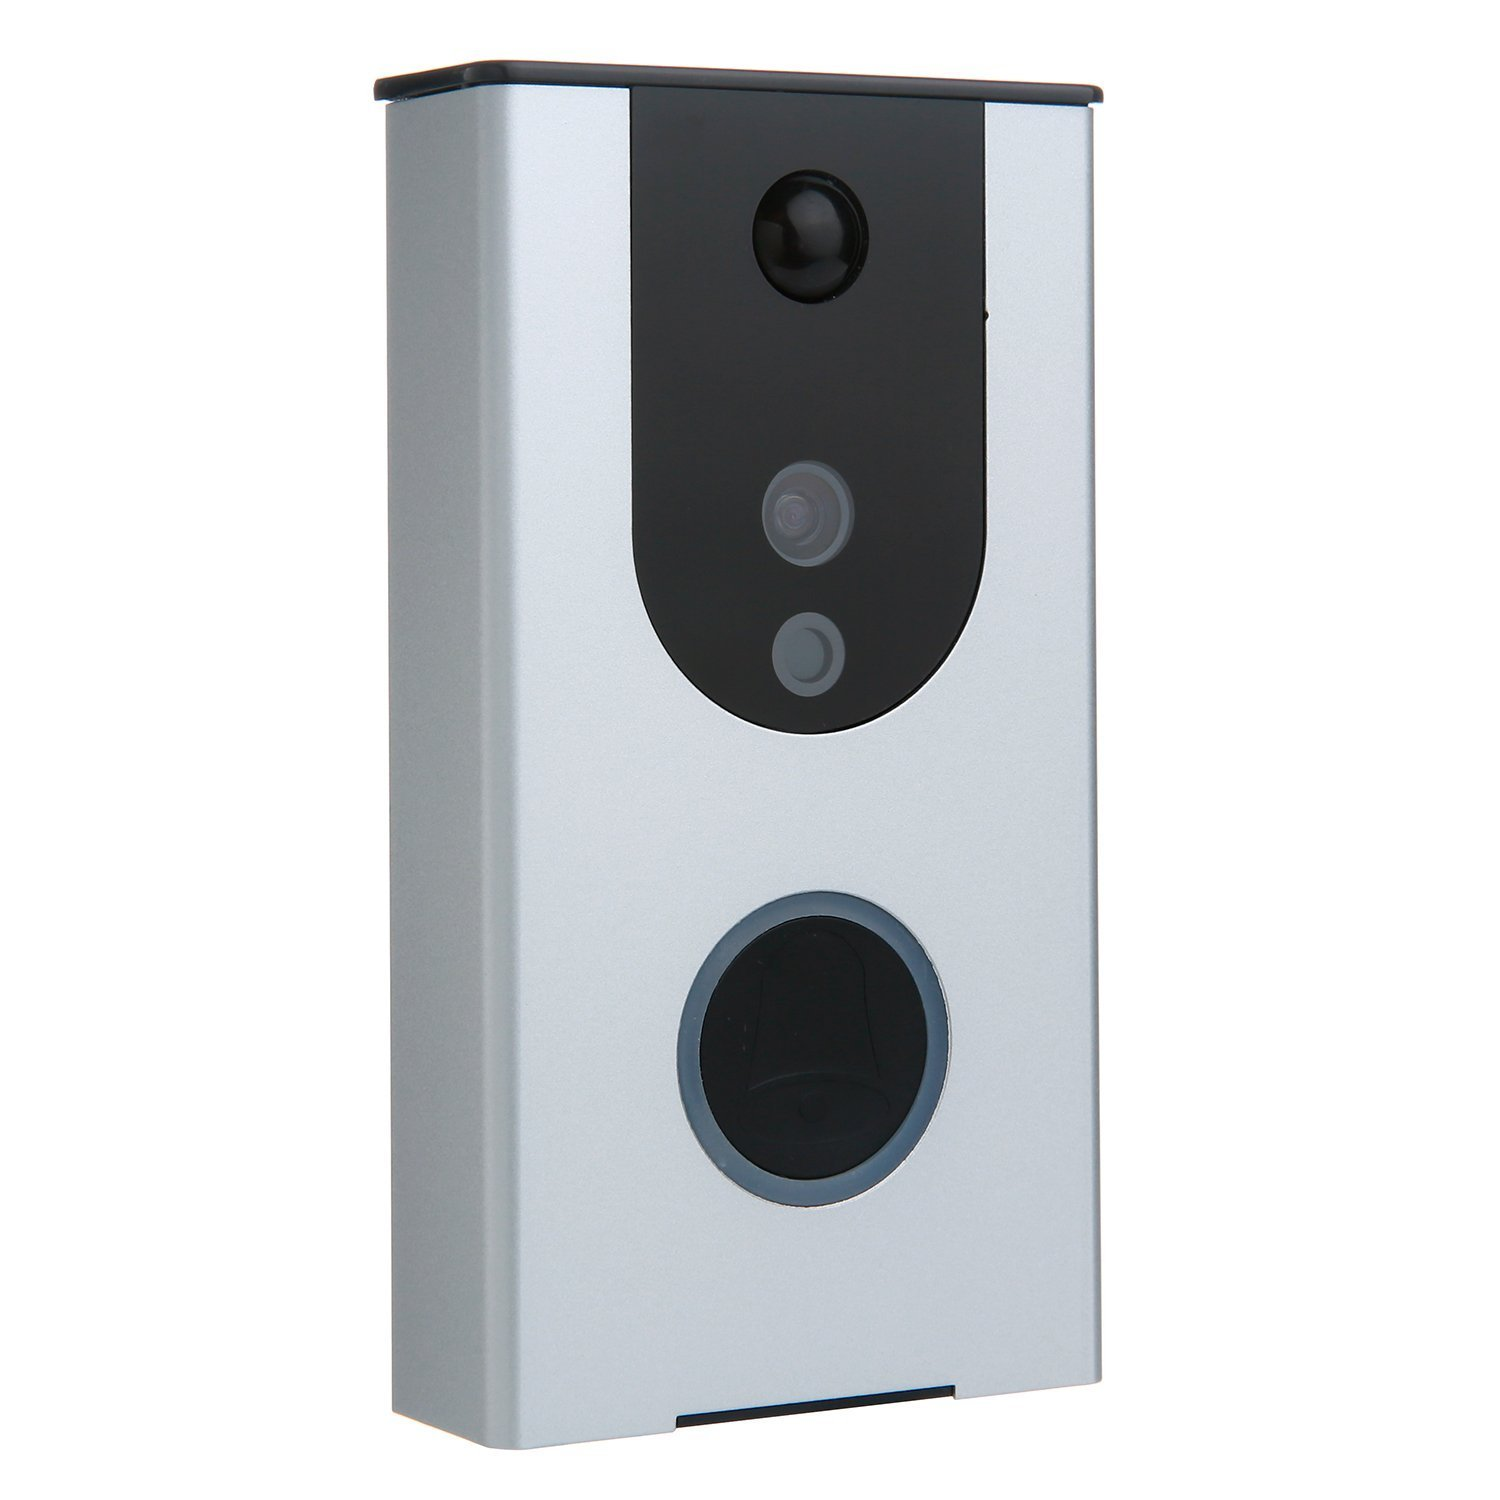 Battery Powered Wi-Fi Video Doorbell Camera, Wireless Doorbell Camera with Built in 8G card, Motion Detection, Night Vision, with Two Way Audio works with Iphone and Android by Eleganci Home by Eleganci Home (Image #4)